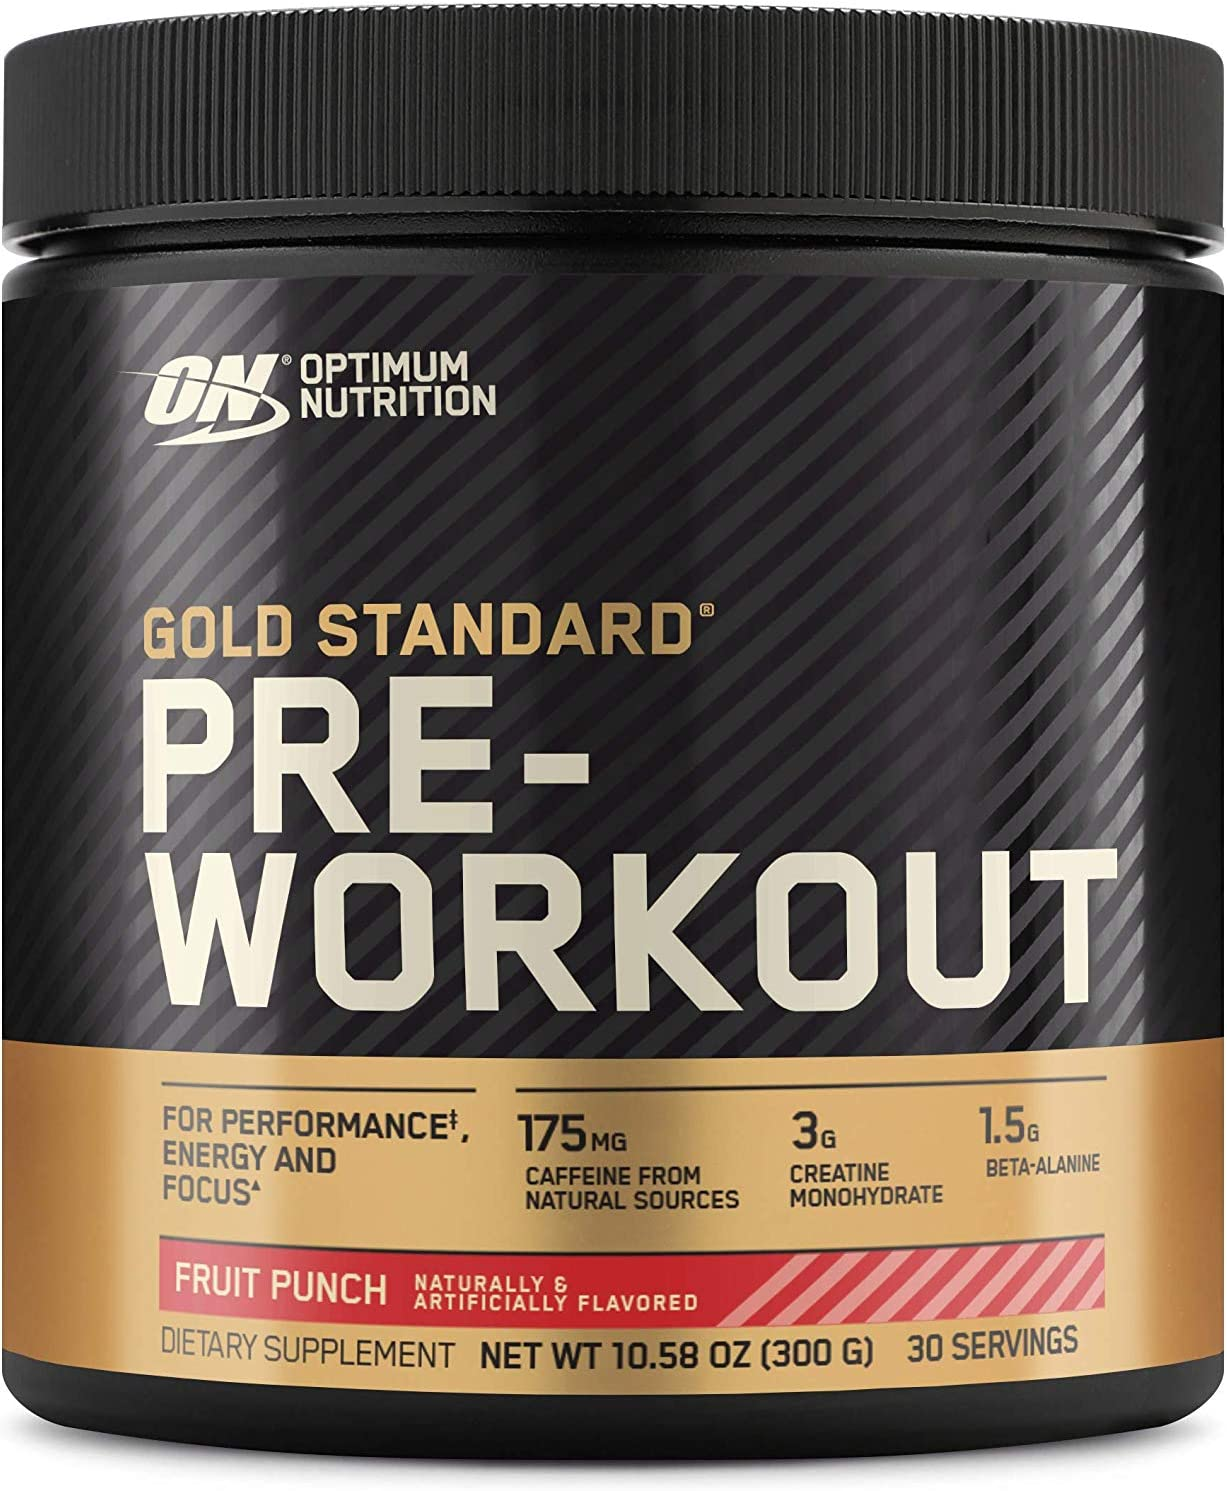 OPTIMUM NUTRITION Gold Standard Pre-Workout with Creatine, Beta-Alanine, and Caffeine for Energy, Flavor: Fruit Punch, 30 Servings: Health & Personal Care